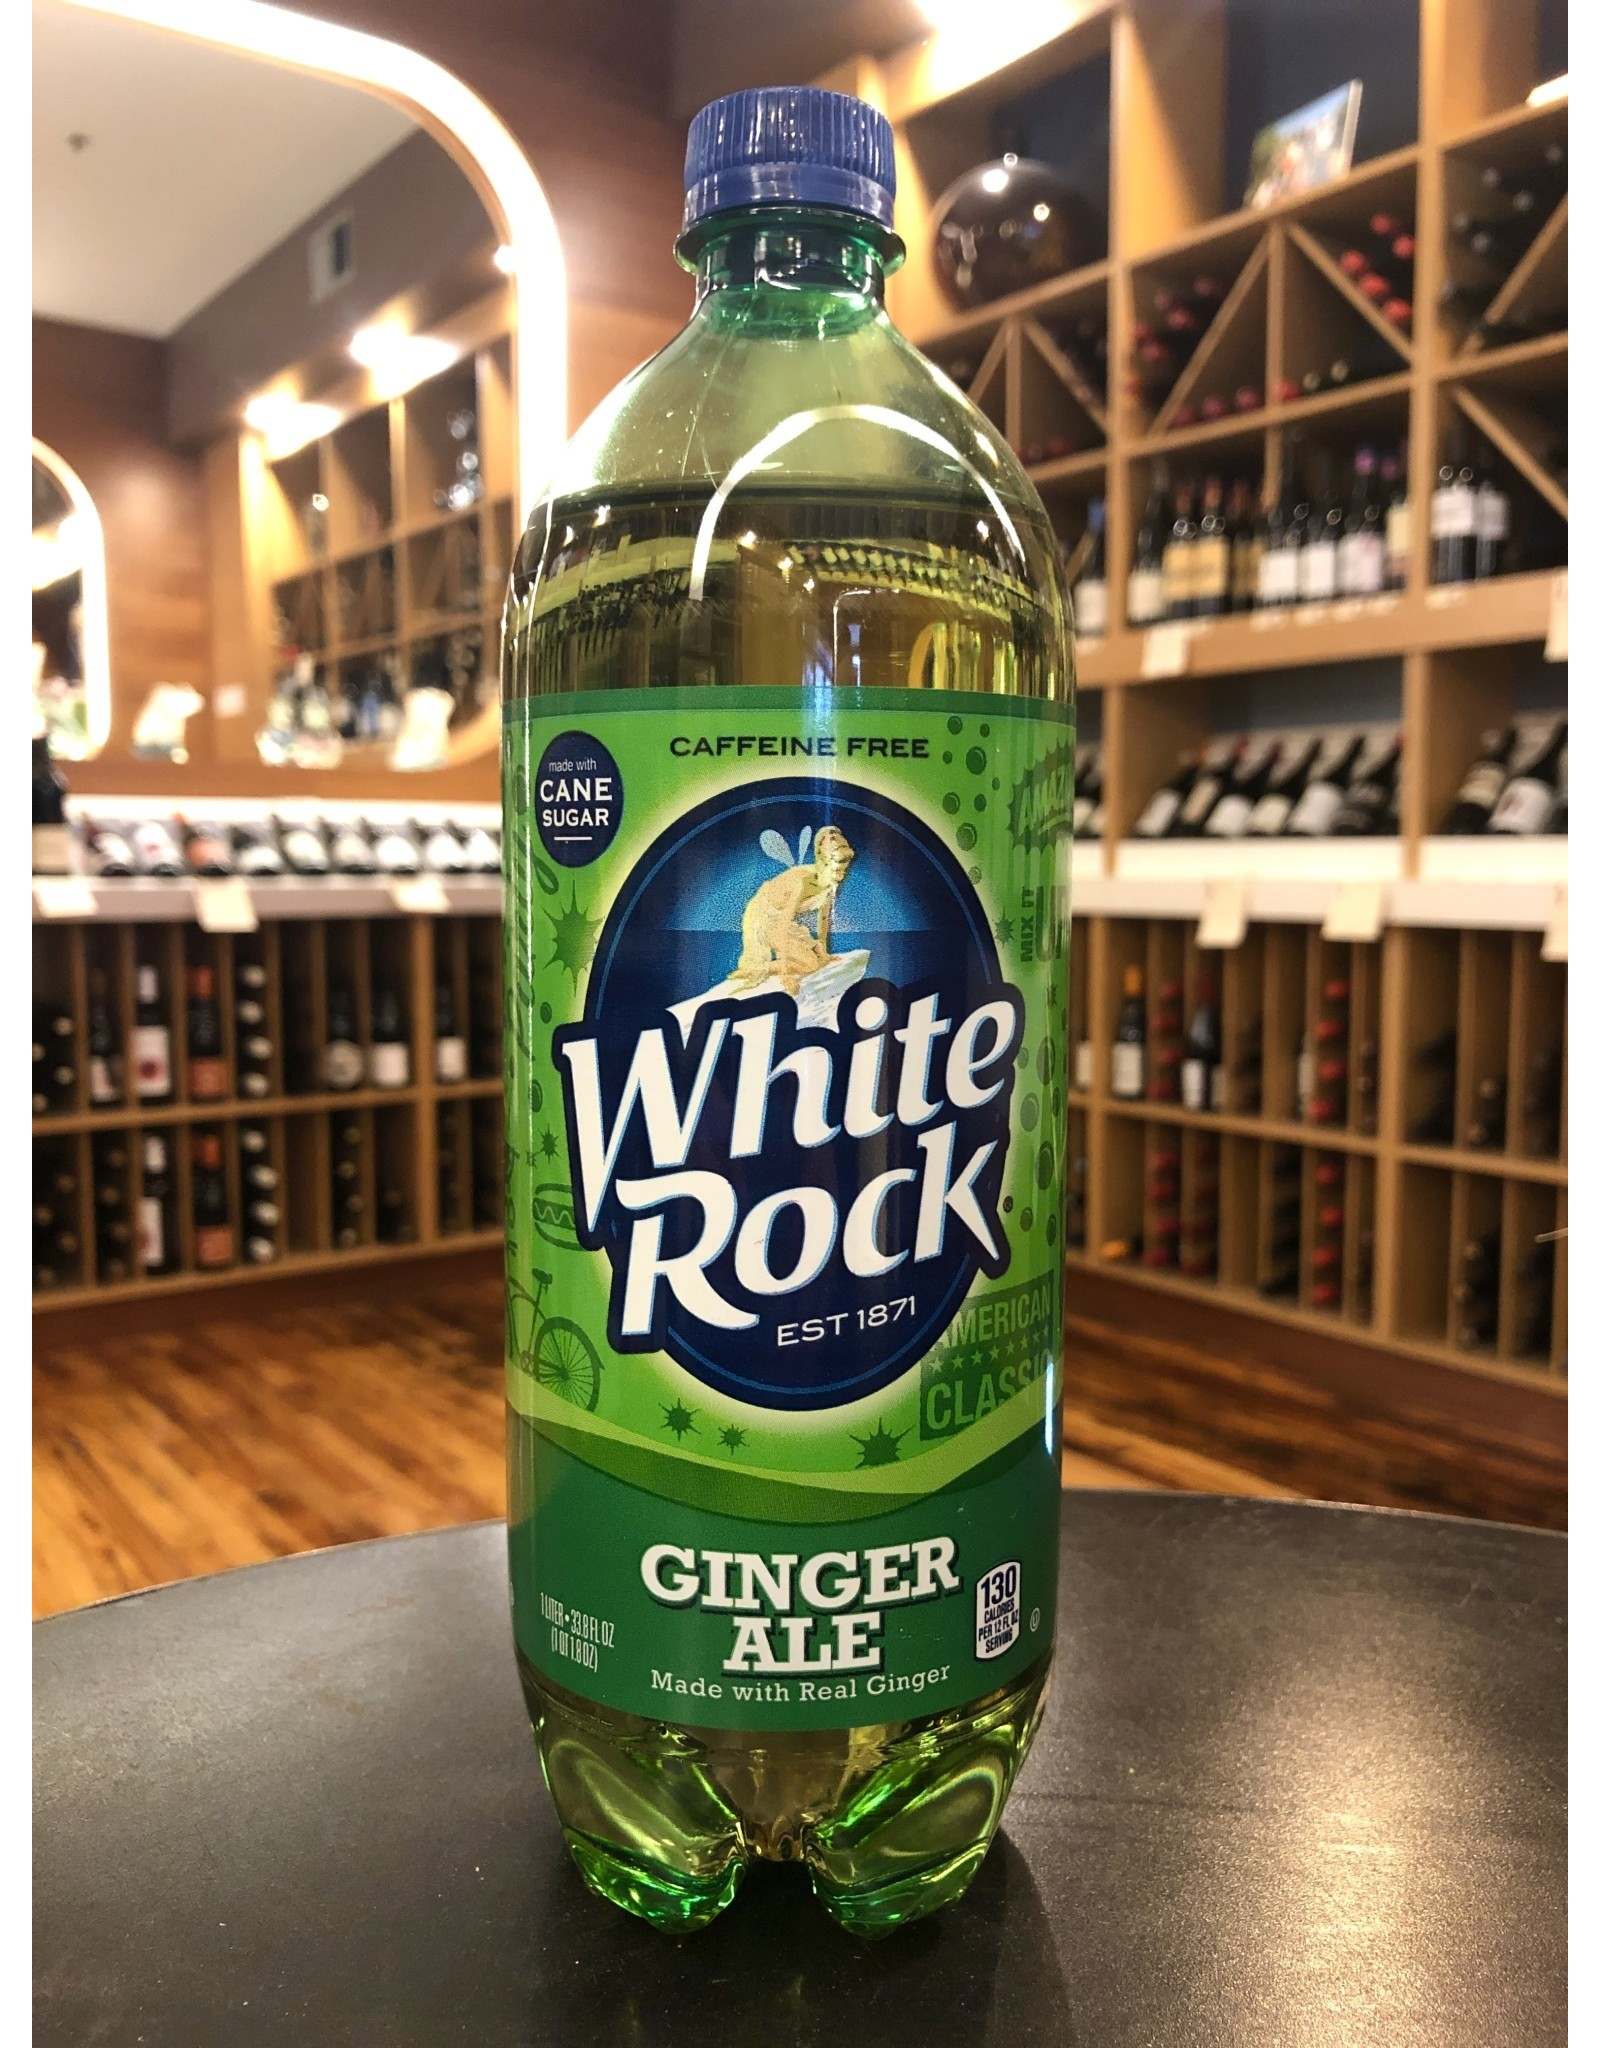 White Rock Ginger Ale - 1 Liter